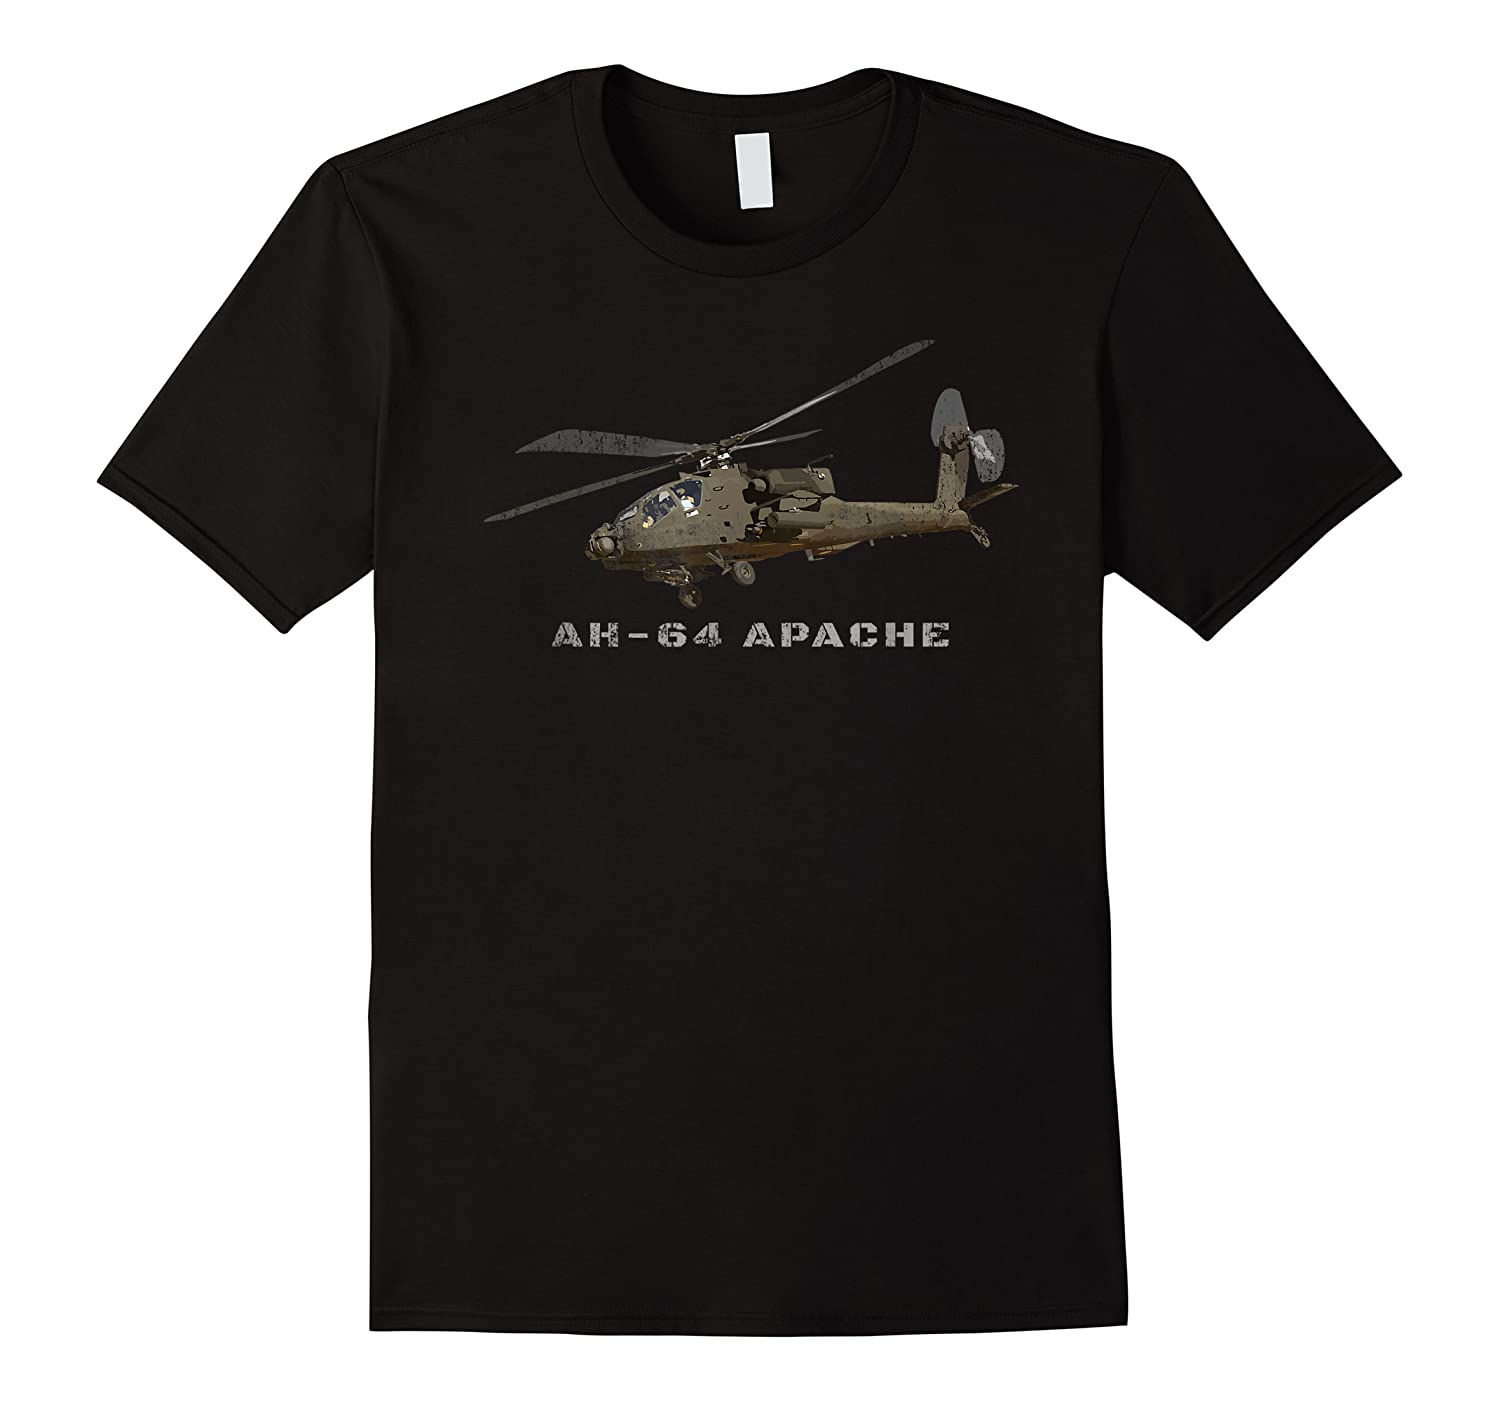 Ah 64 Apache Army Attack Helicopter Gift Shirts